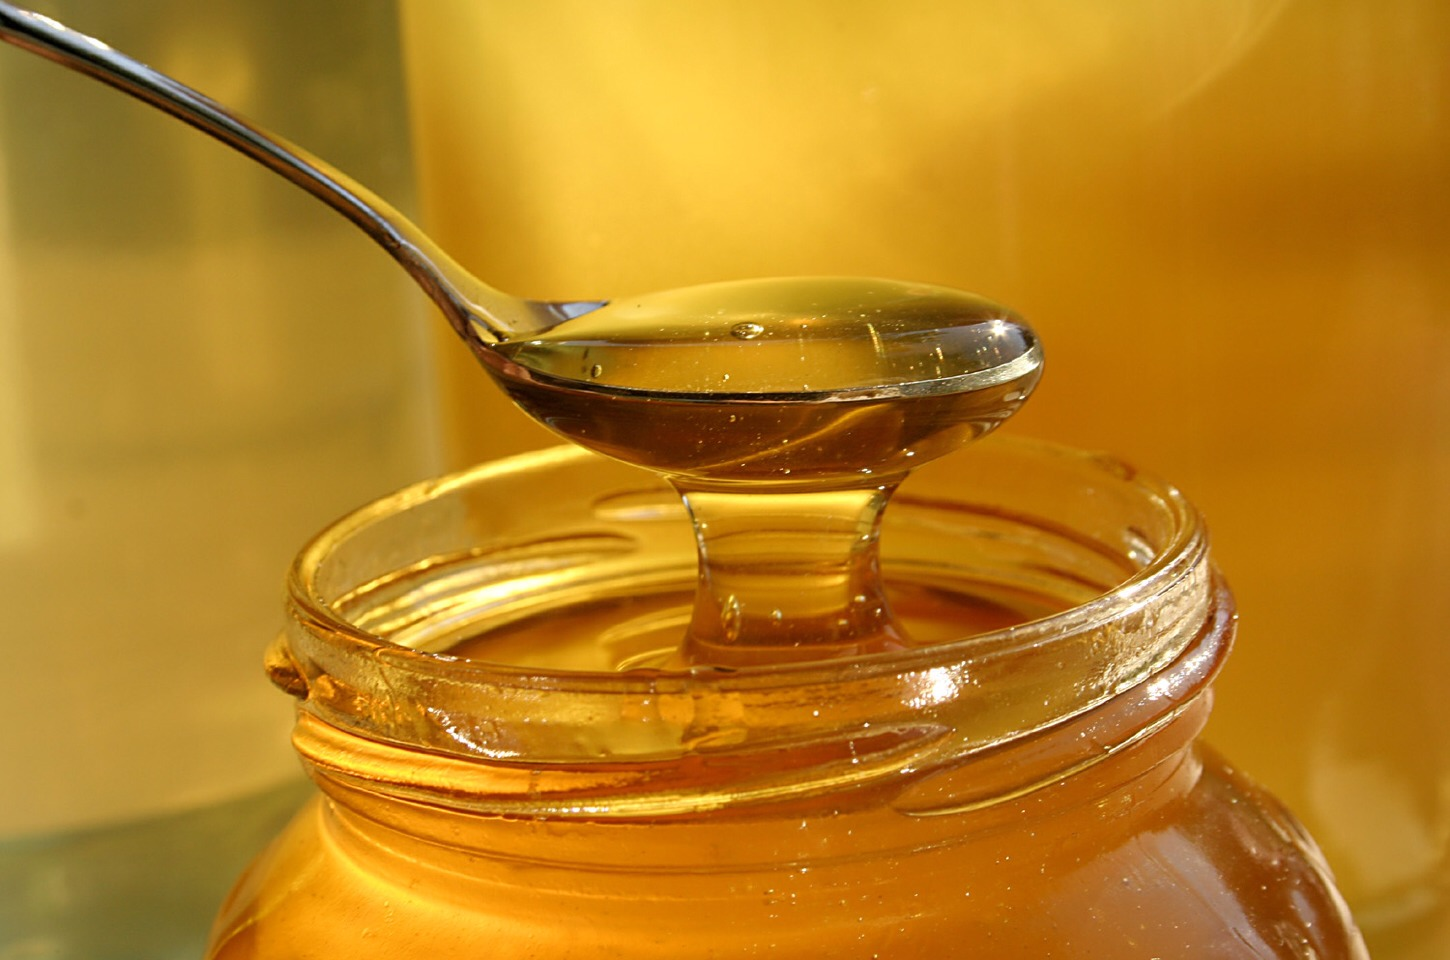 1 Tablespoon Honey